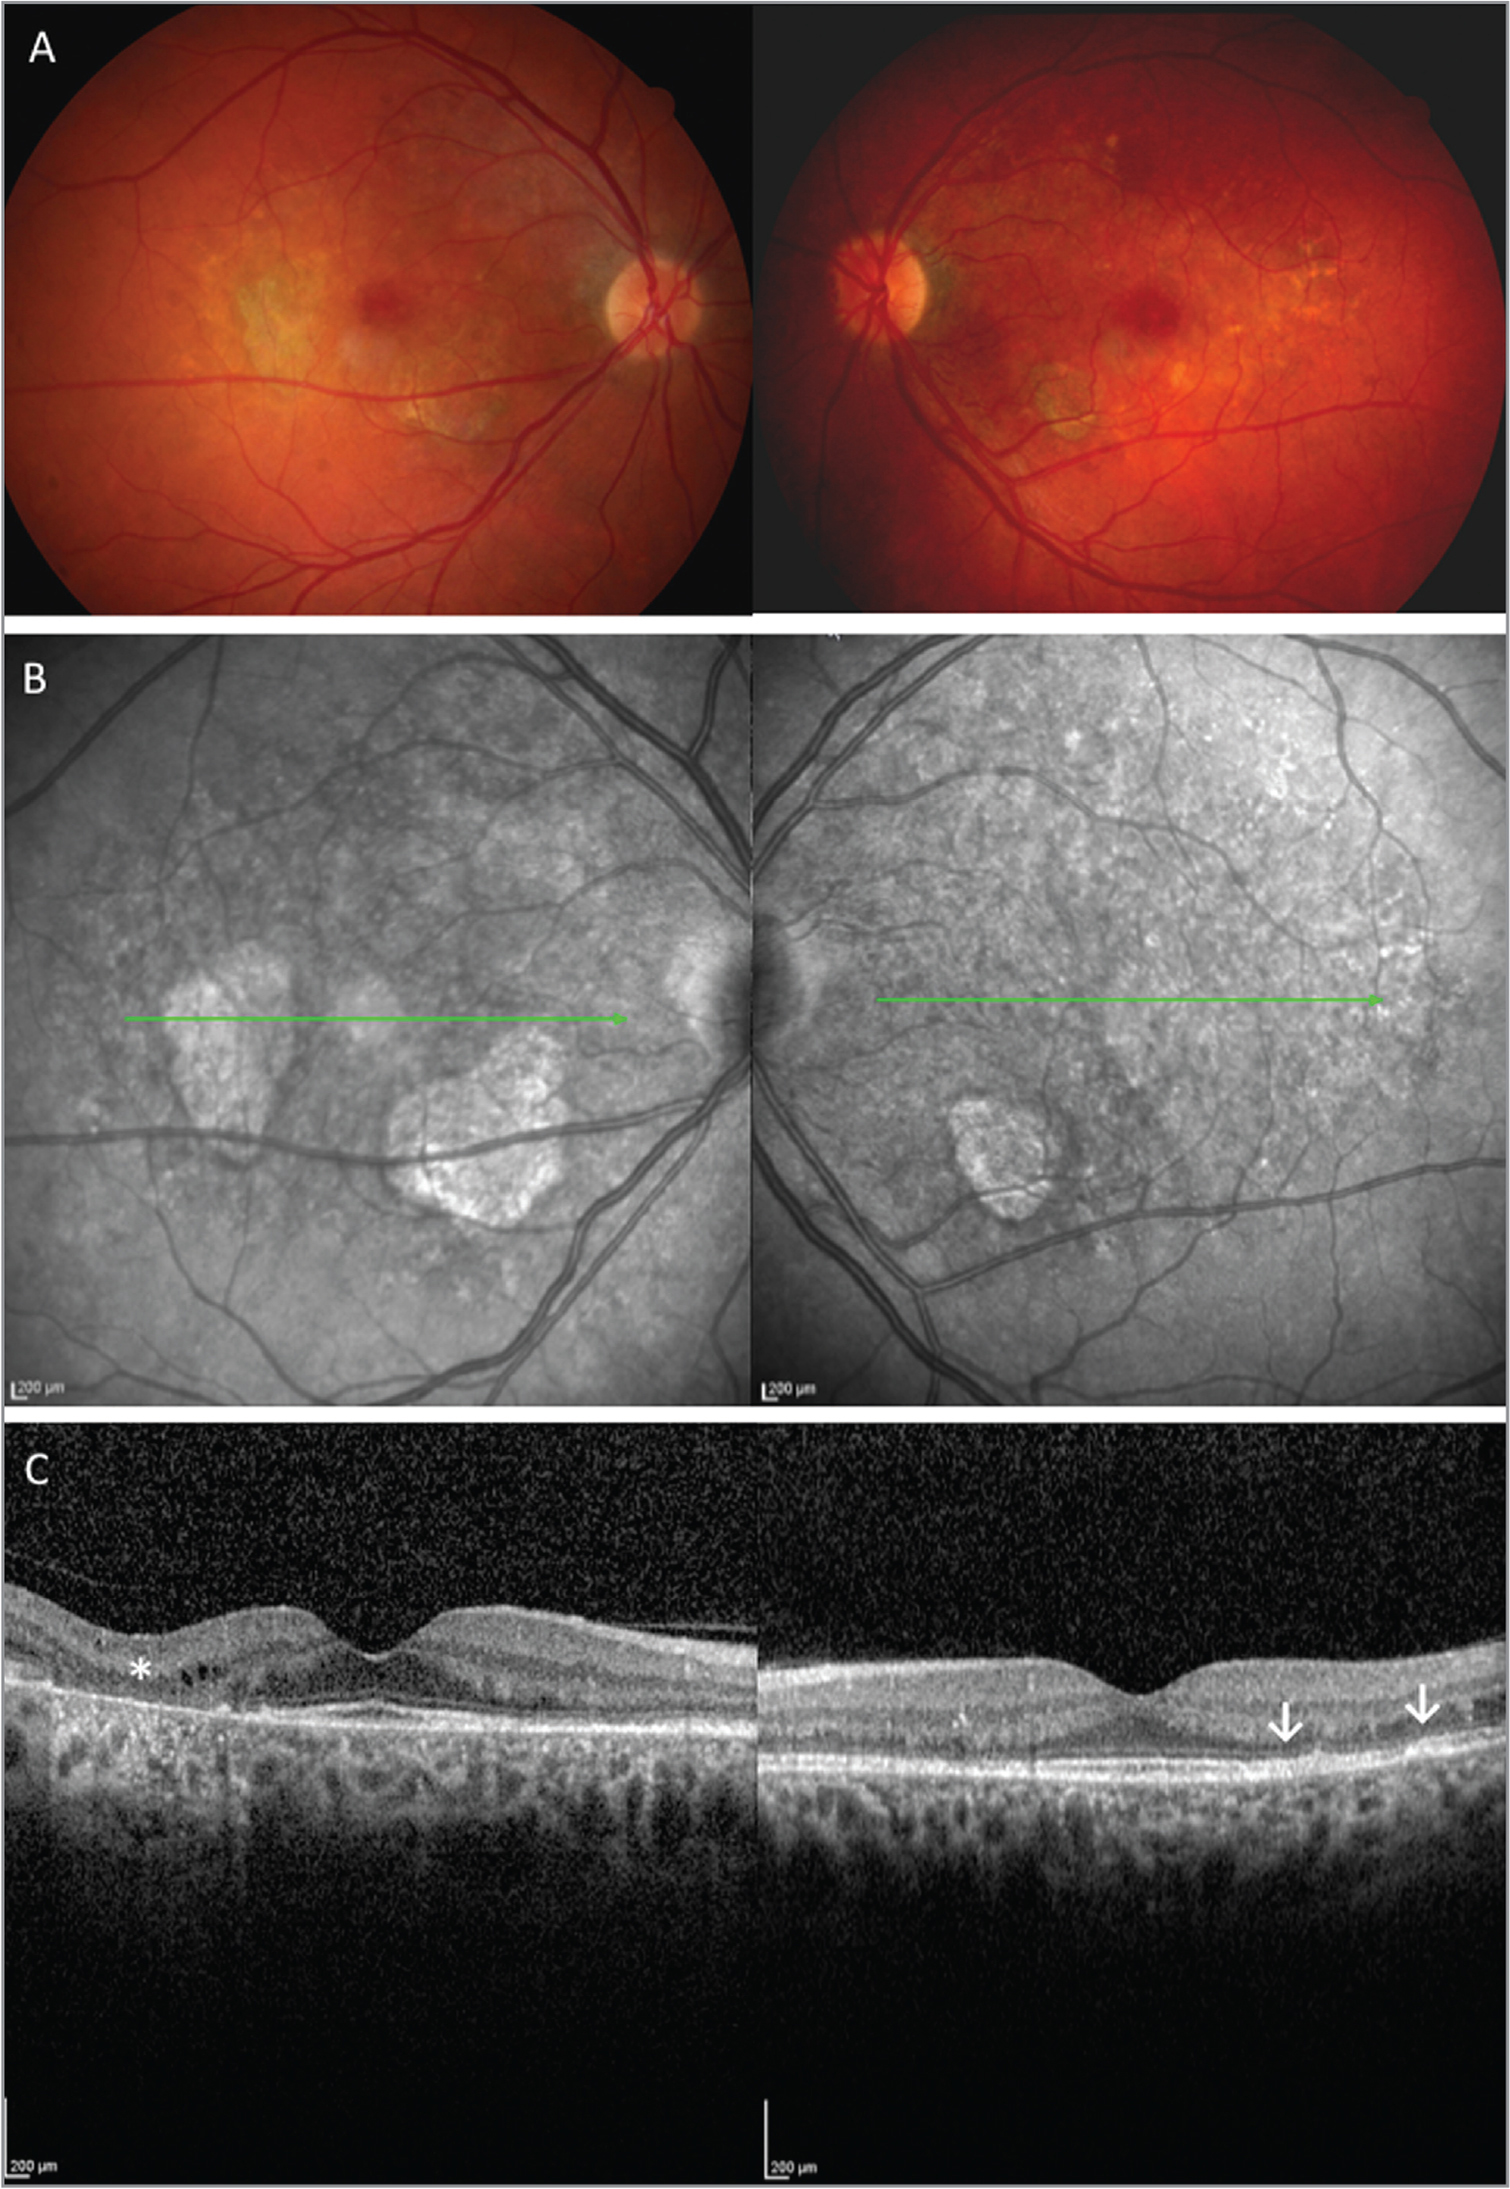 Typical presentation of pentosane polysulfate sodium maculopathy. (A) Color fundus photos show bilateral hypopigmented spots and patchy retinal pigment epithelium (RPE) atrophy. (B) Near-infrared reflectance imaging highlights atrophy as areas of hyperreflectance and depicts the overall pigment disturbance, and (C) optical coherence tomography shows perifoveal areas of outer retinal and RPE atrophy with overlying intraretinal cysts (asterisk) and focal RPE thickening (arrows).